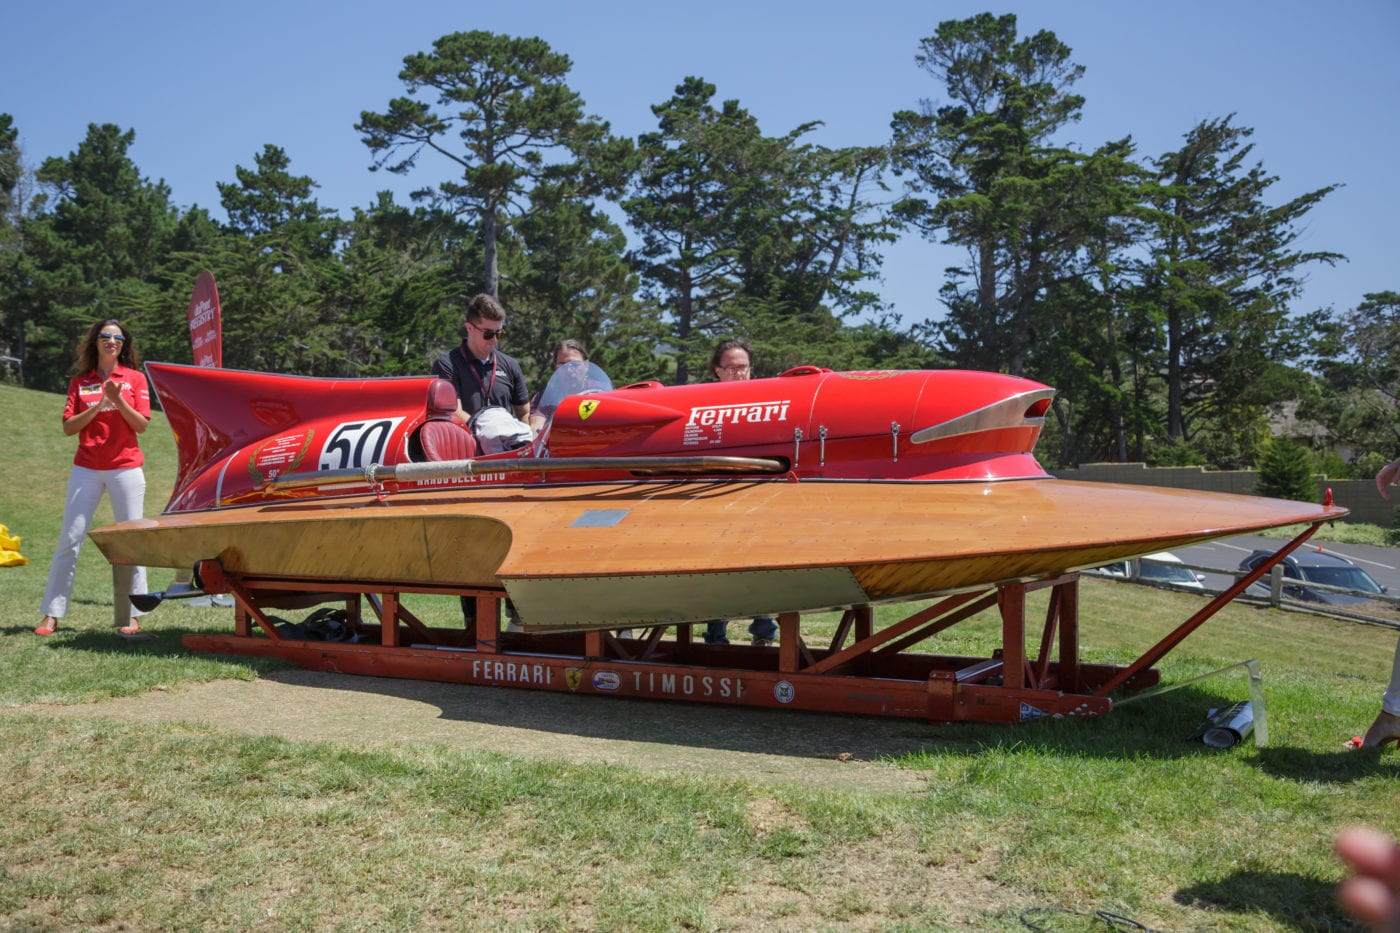 The Only Ferrari Powered Racing Boat Has Landed In The U S For The 1st Time Ever